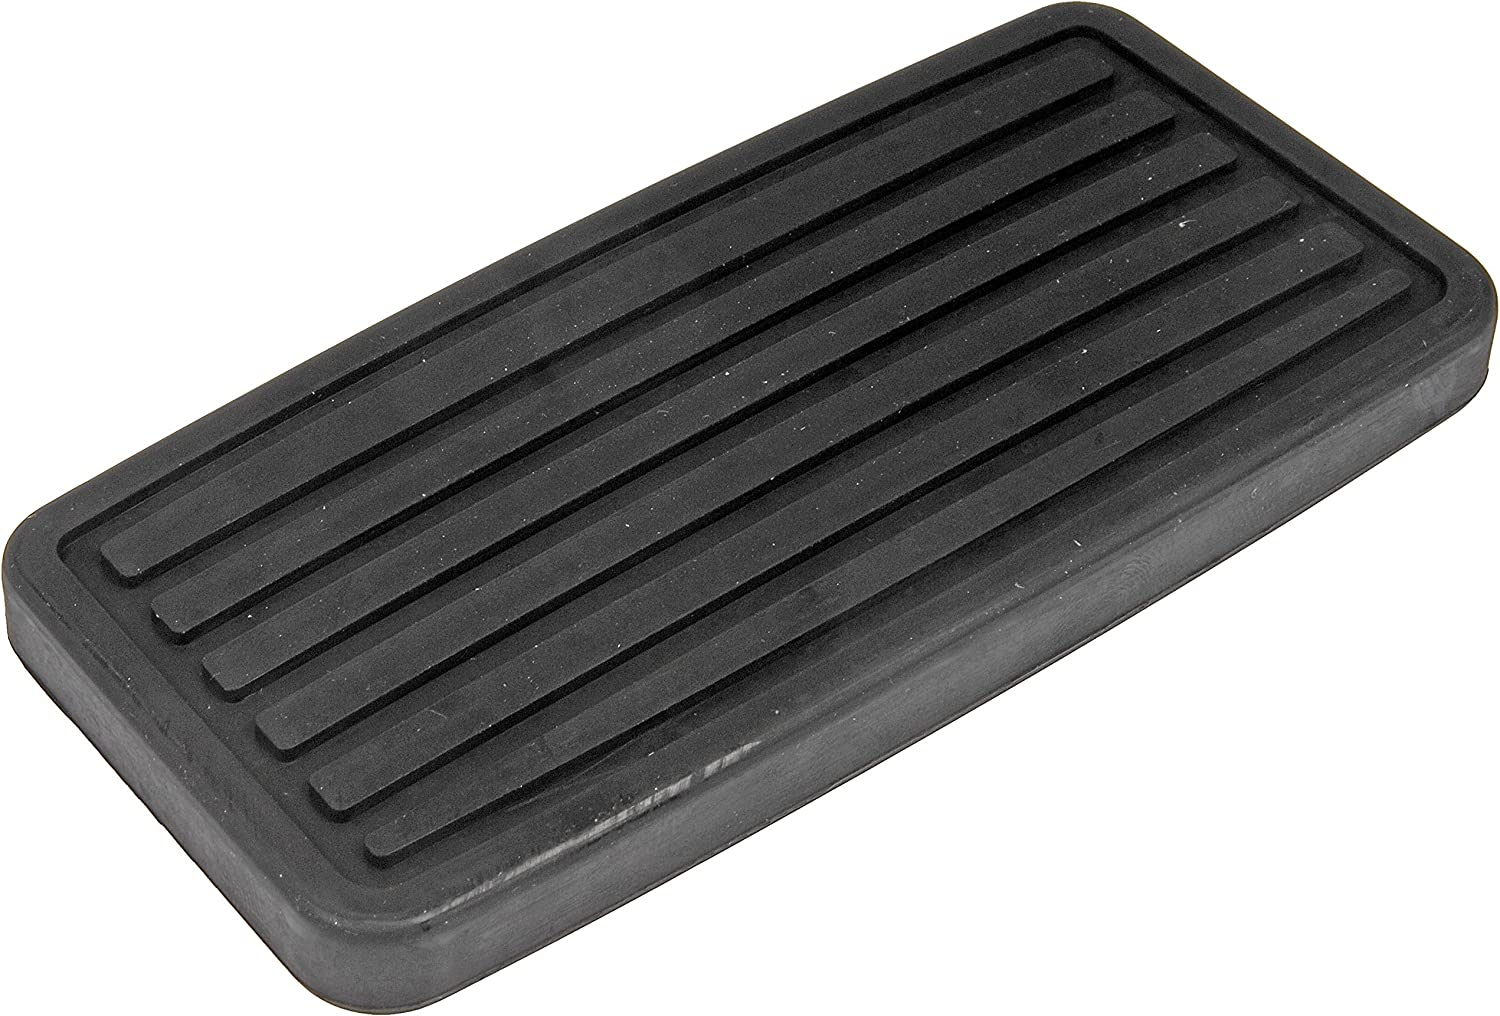 Drag Specialties Replacement Rubber Pad for Chrome Brake Pedal Pads DS-720417